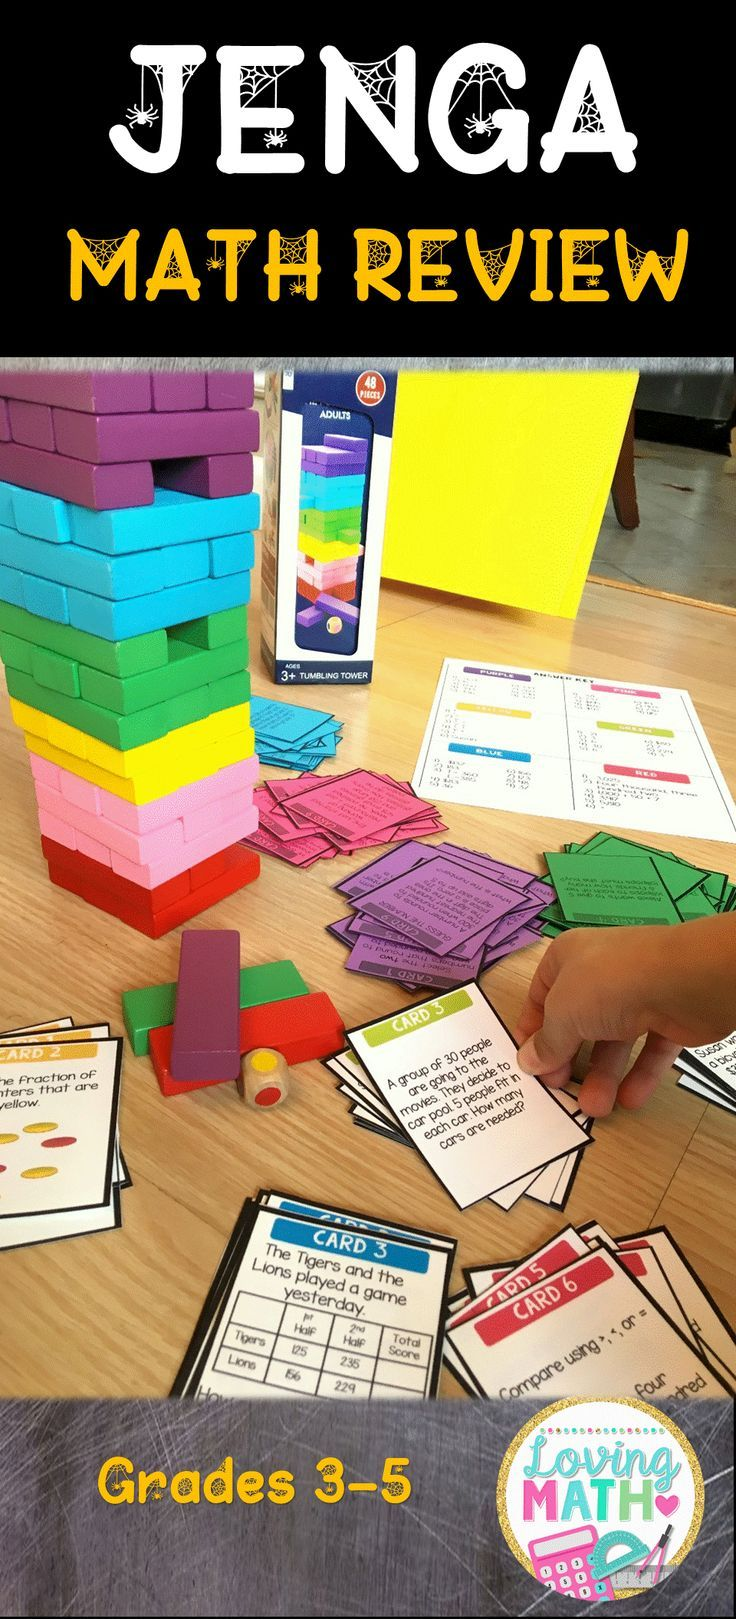 Uncategorized Love Test Kids third grade math review game test prep gaming and kids will love it